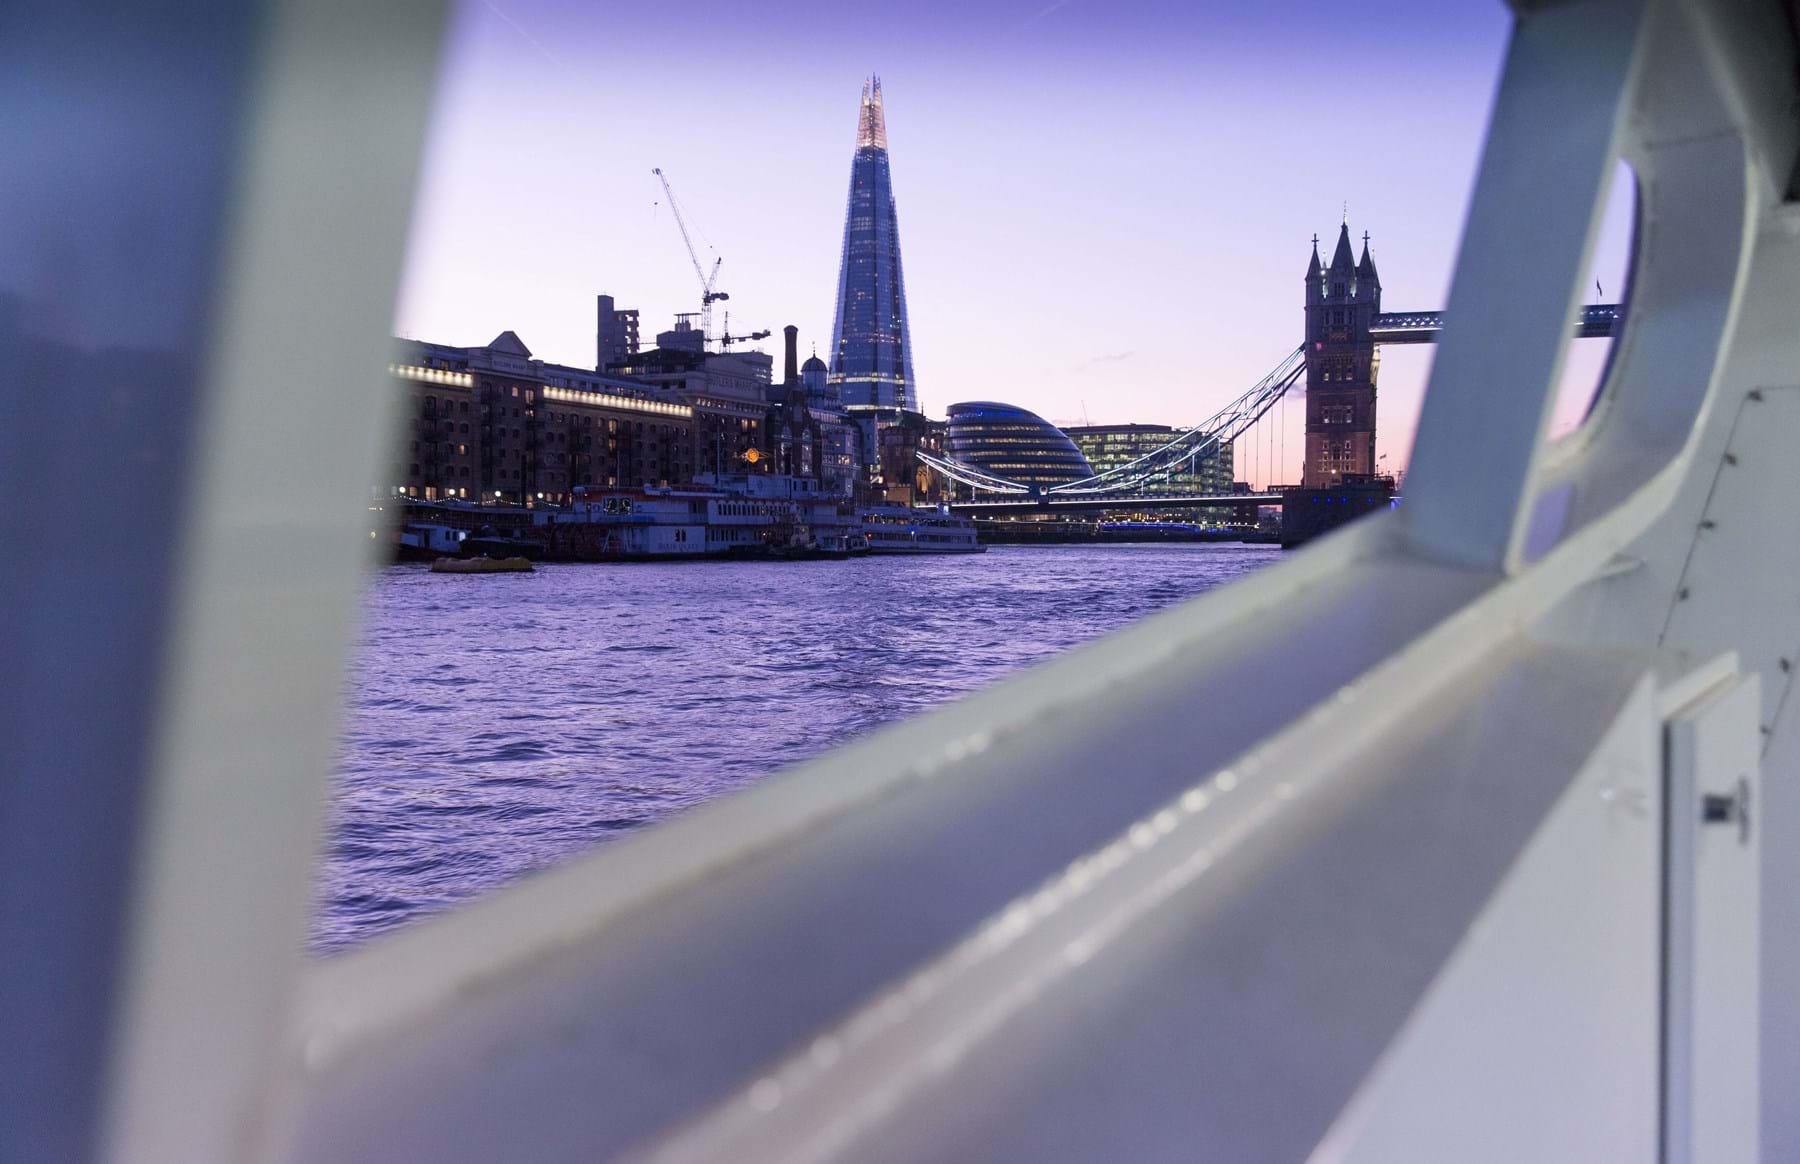 London Bridge from the boat